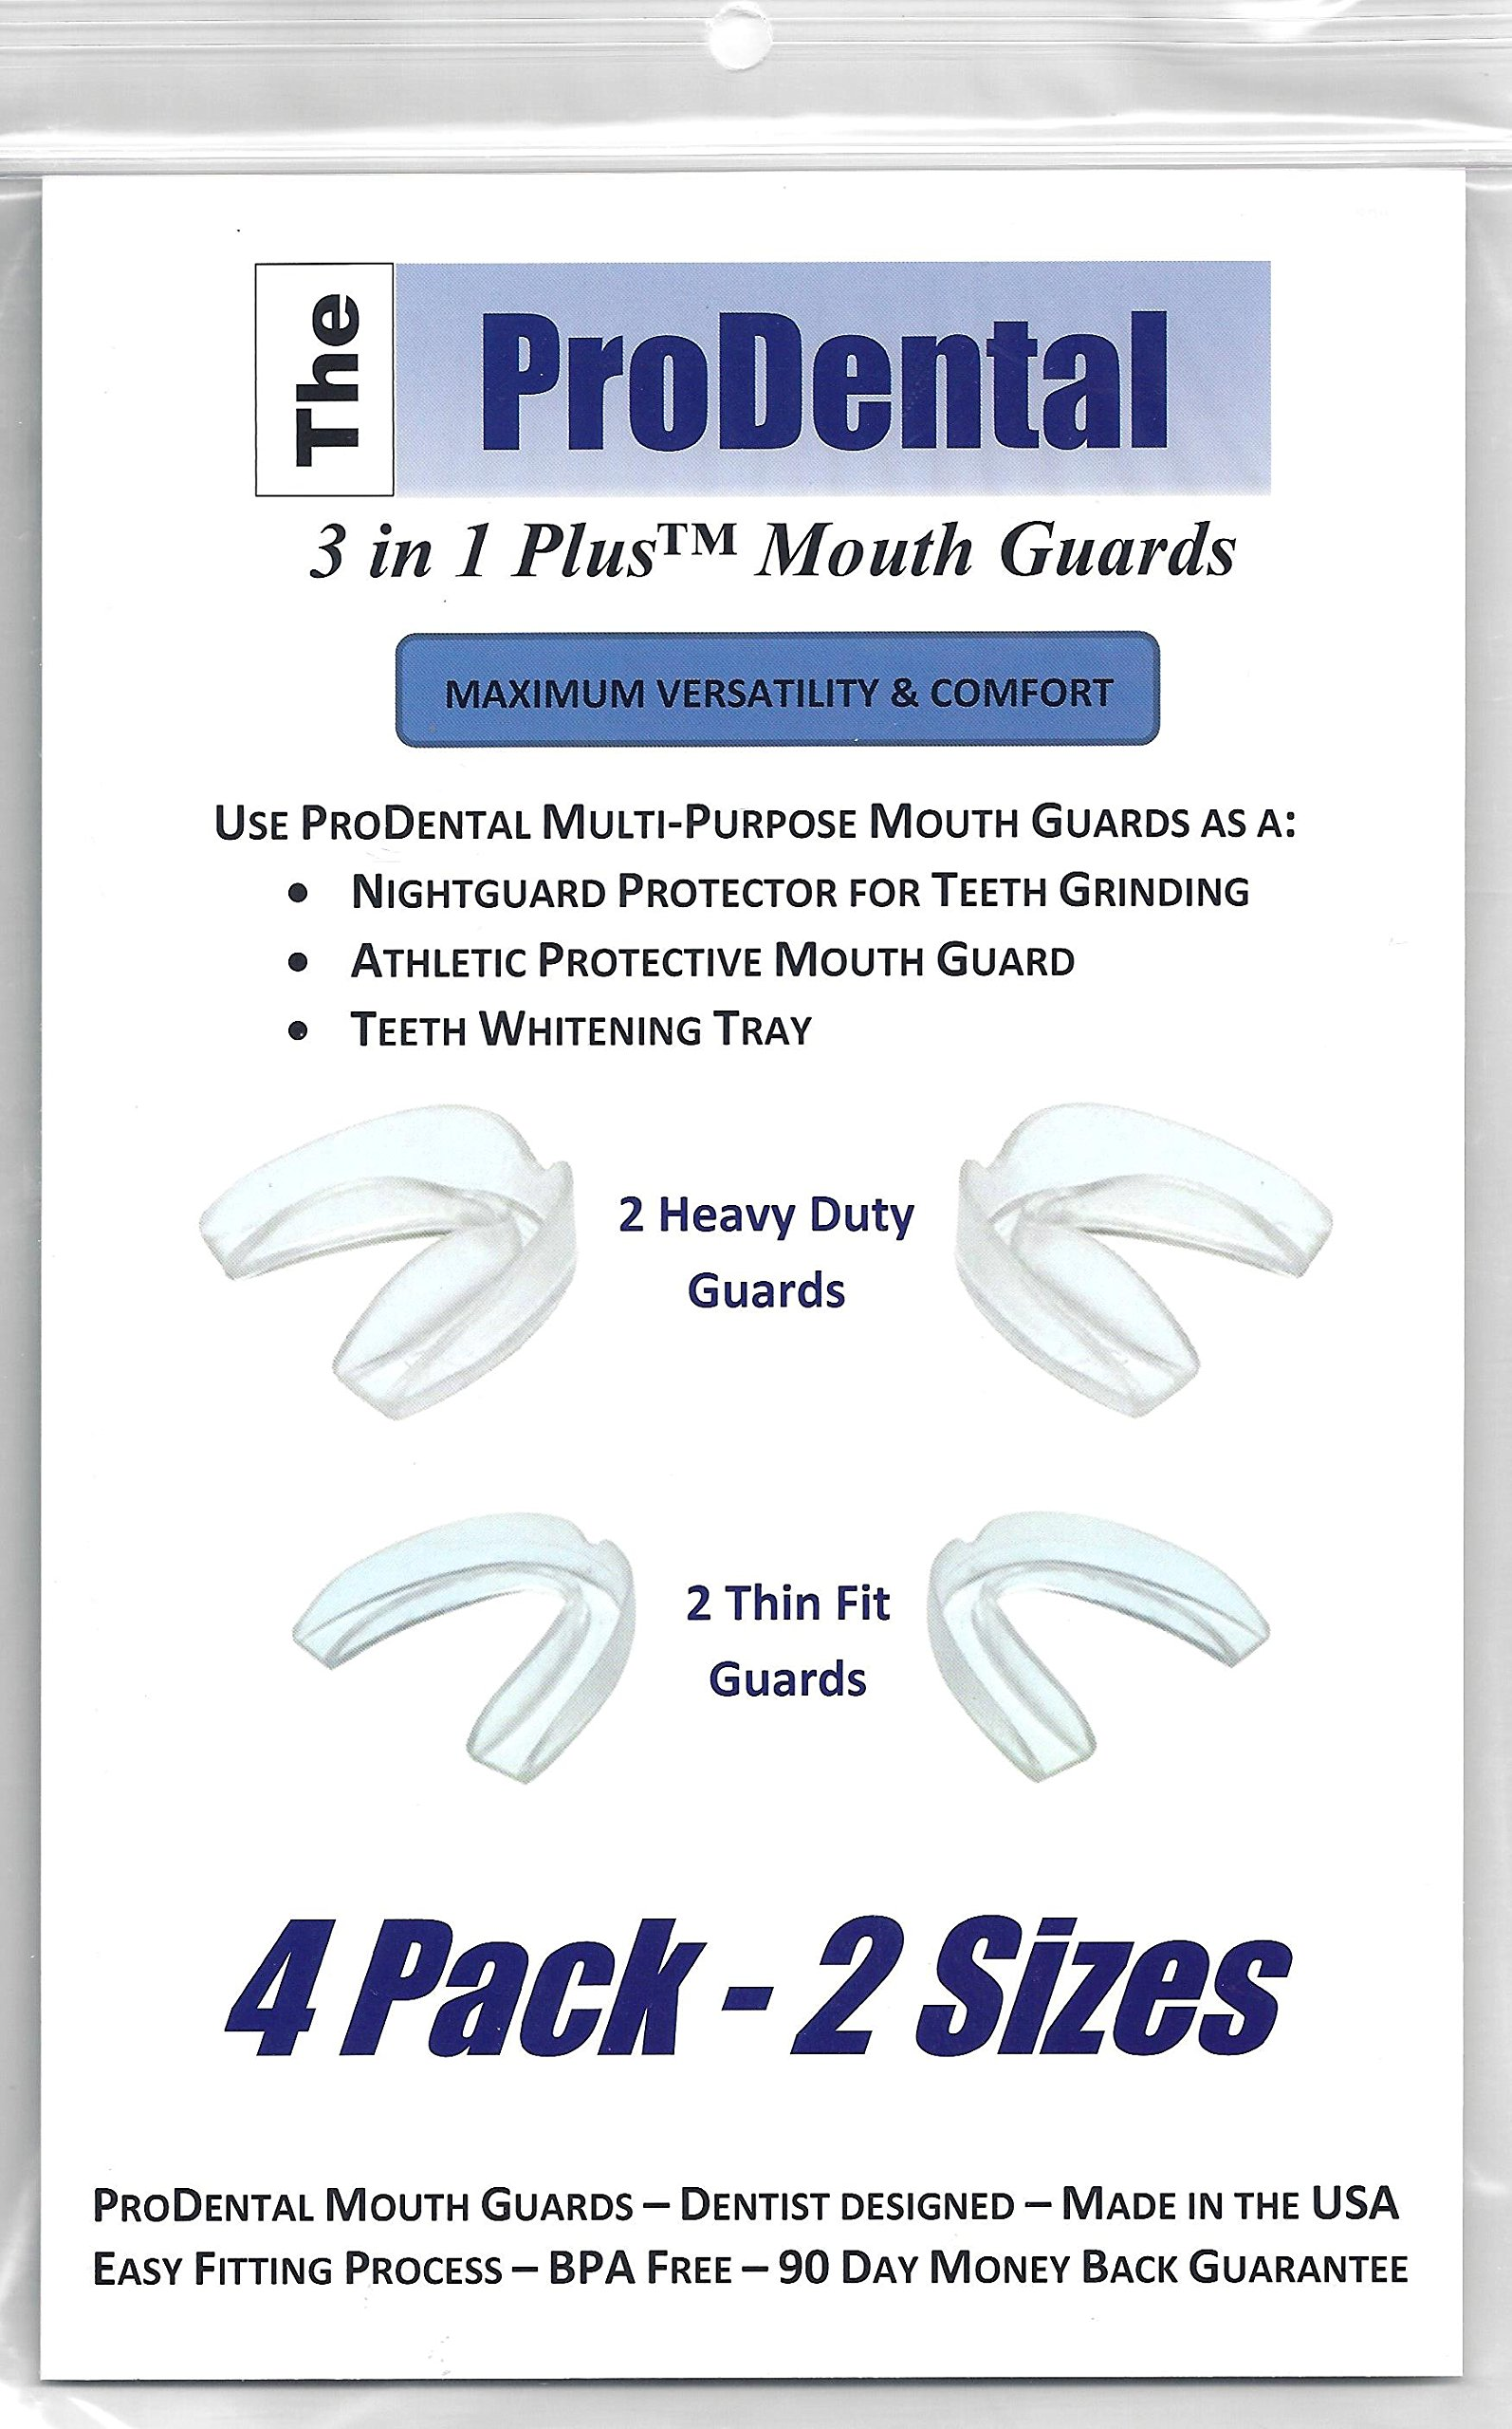 Professional Mouth Guard 4 pack from ProDental - BPA Free - Stops Teeth Grinding & Clenching - 2 Customizable Sizes for Optimal Comfort Night Guards - Hygienic, FDA Approved Soft Material, Made in USA